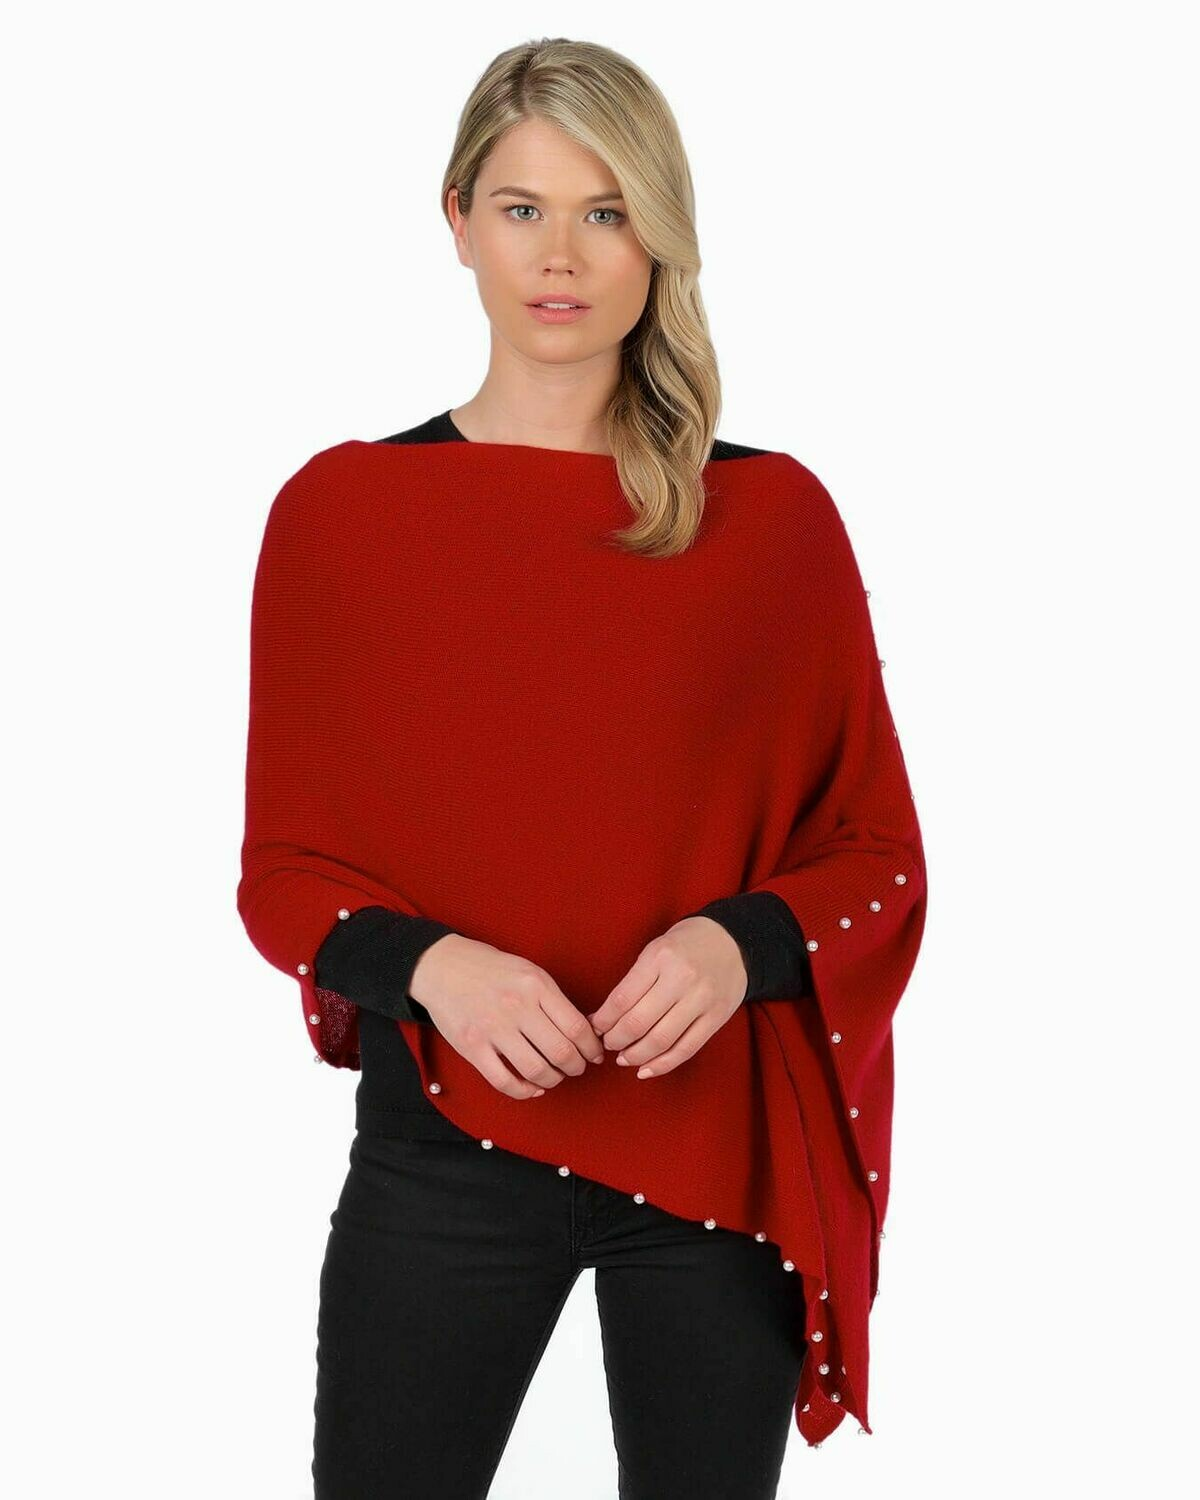 Jackie Z Cashmere Dress Topper With Pearl Trim in Red Velvet